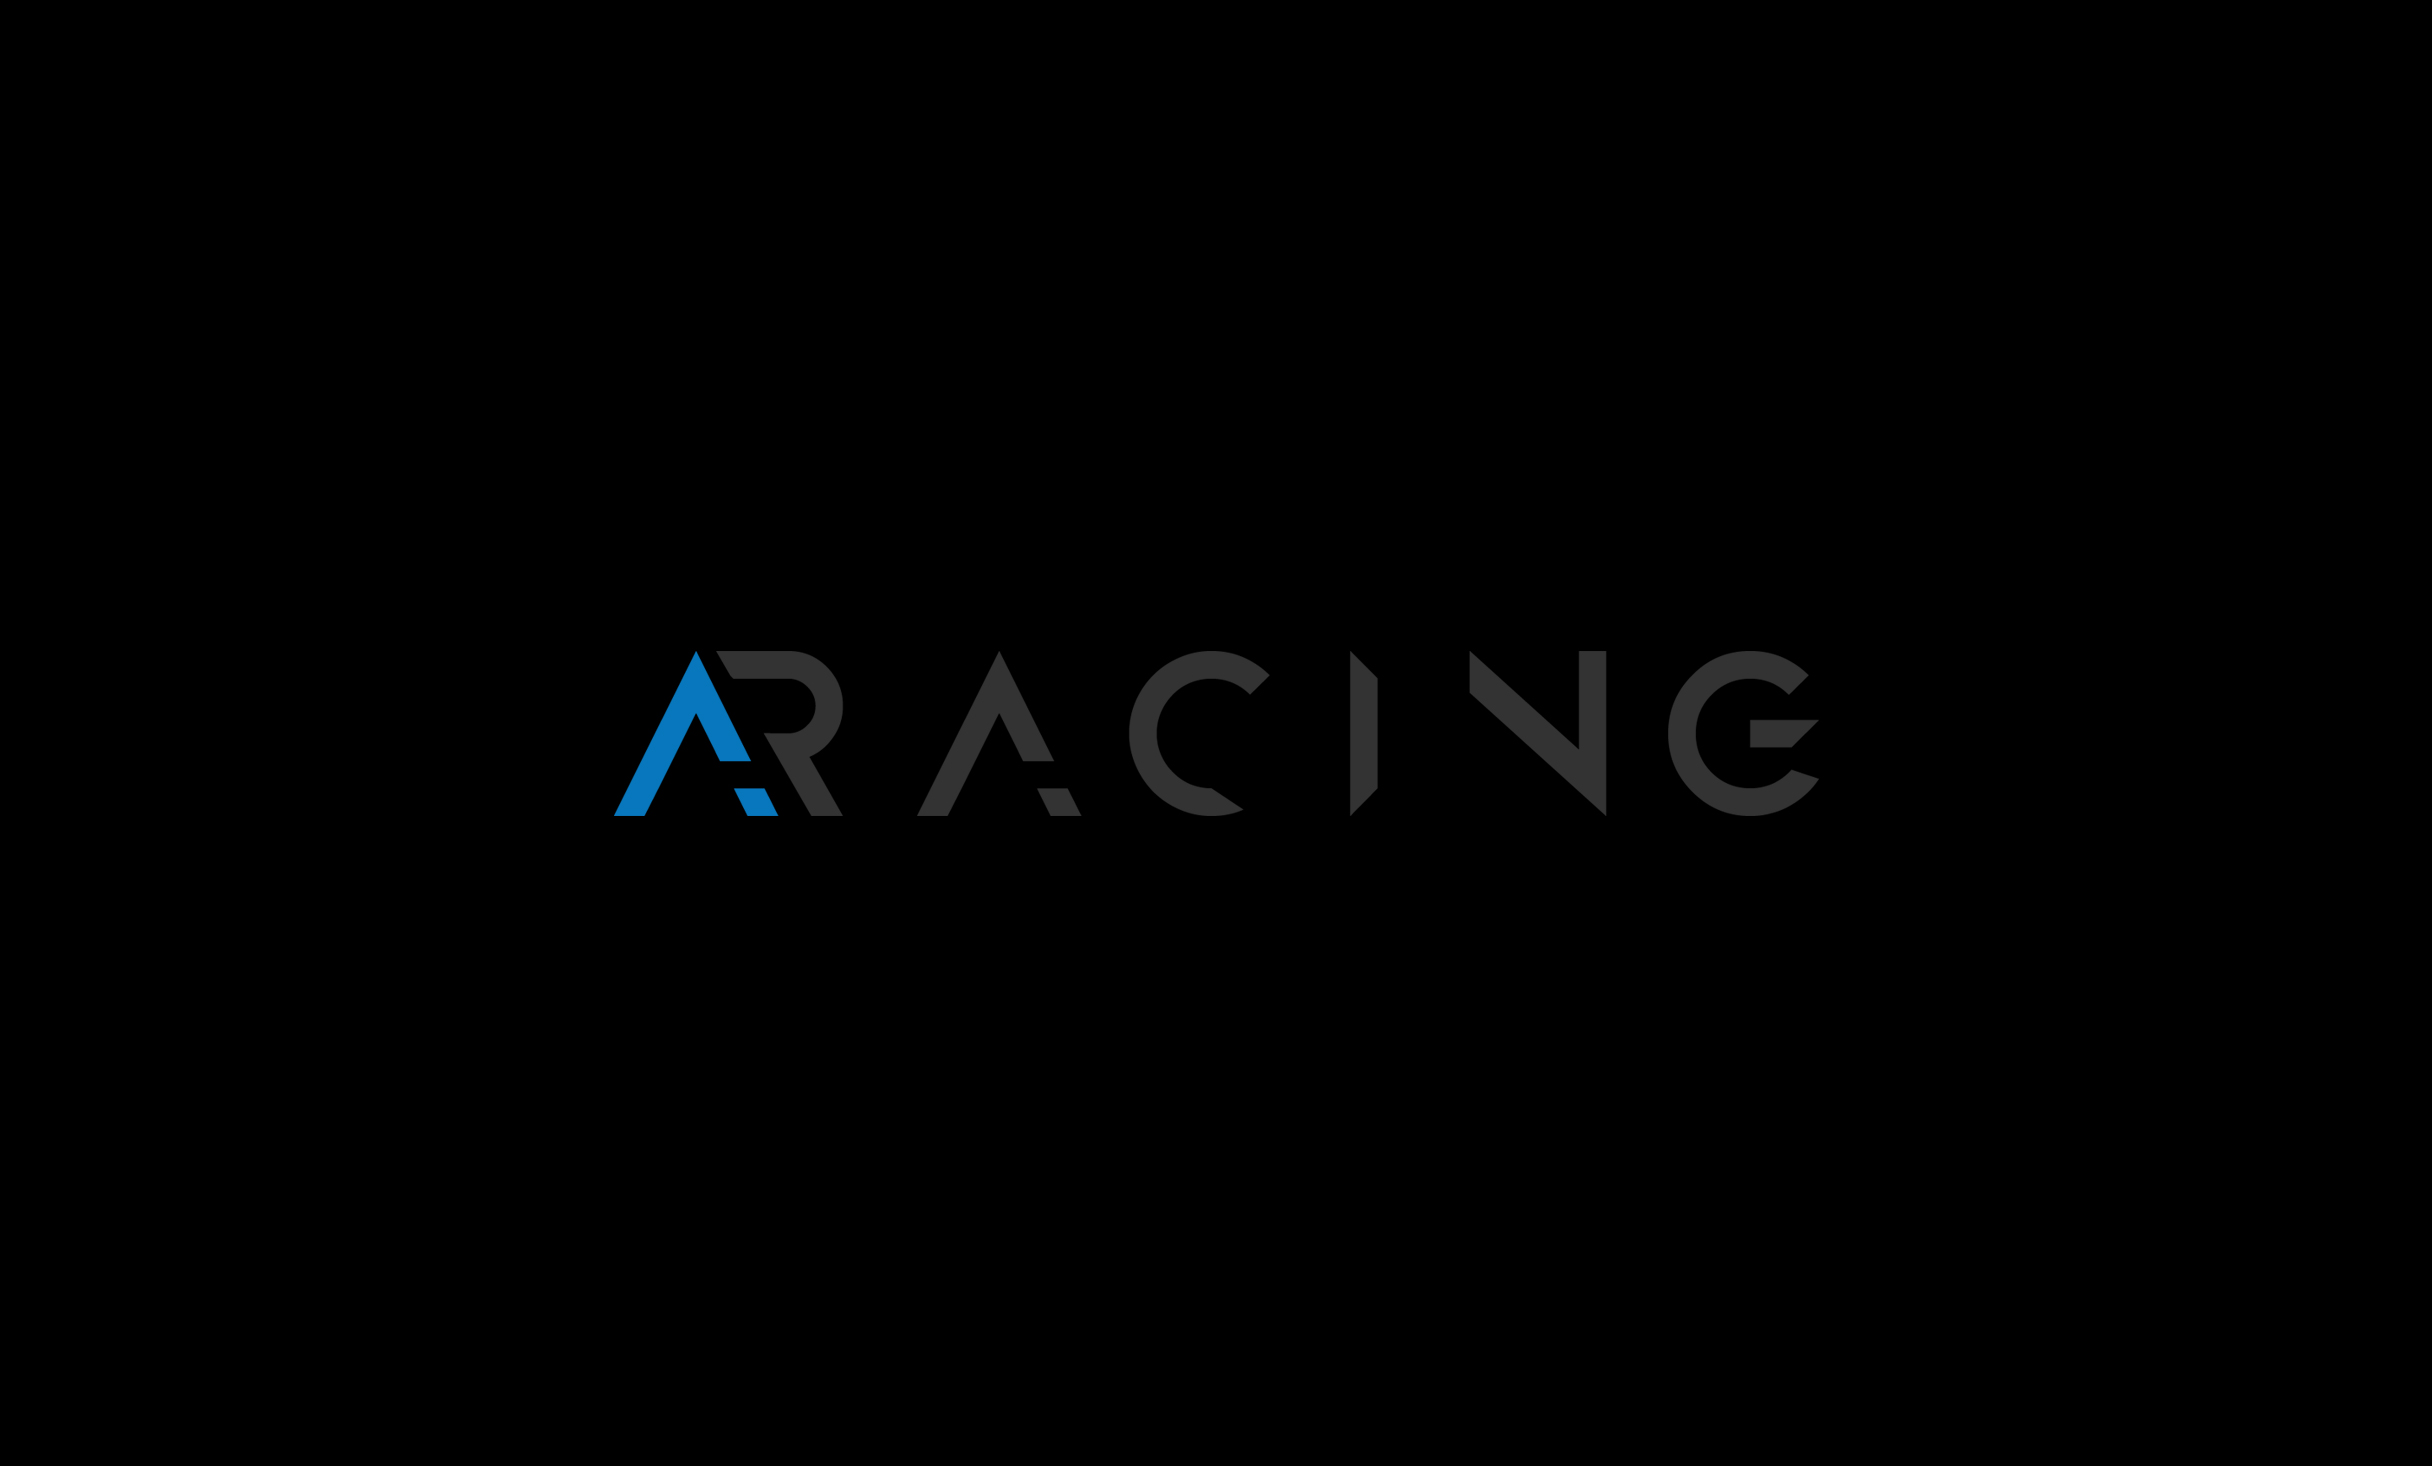 racing team logo design